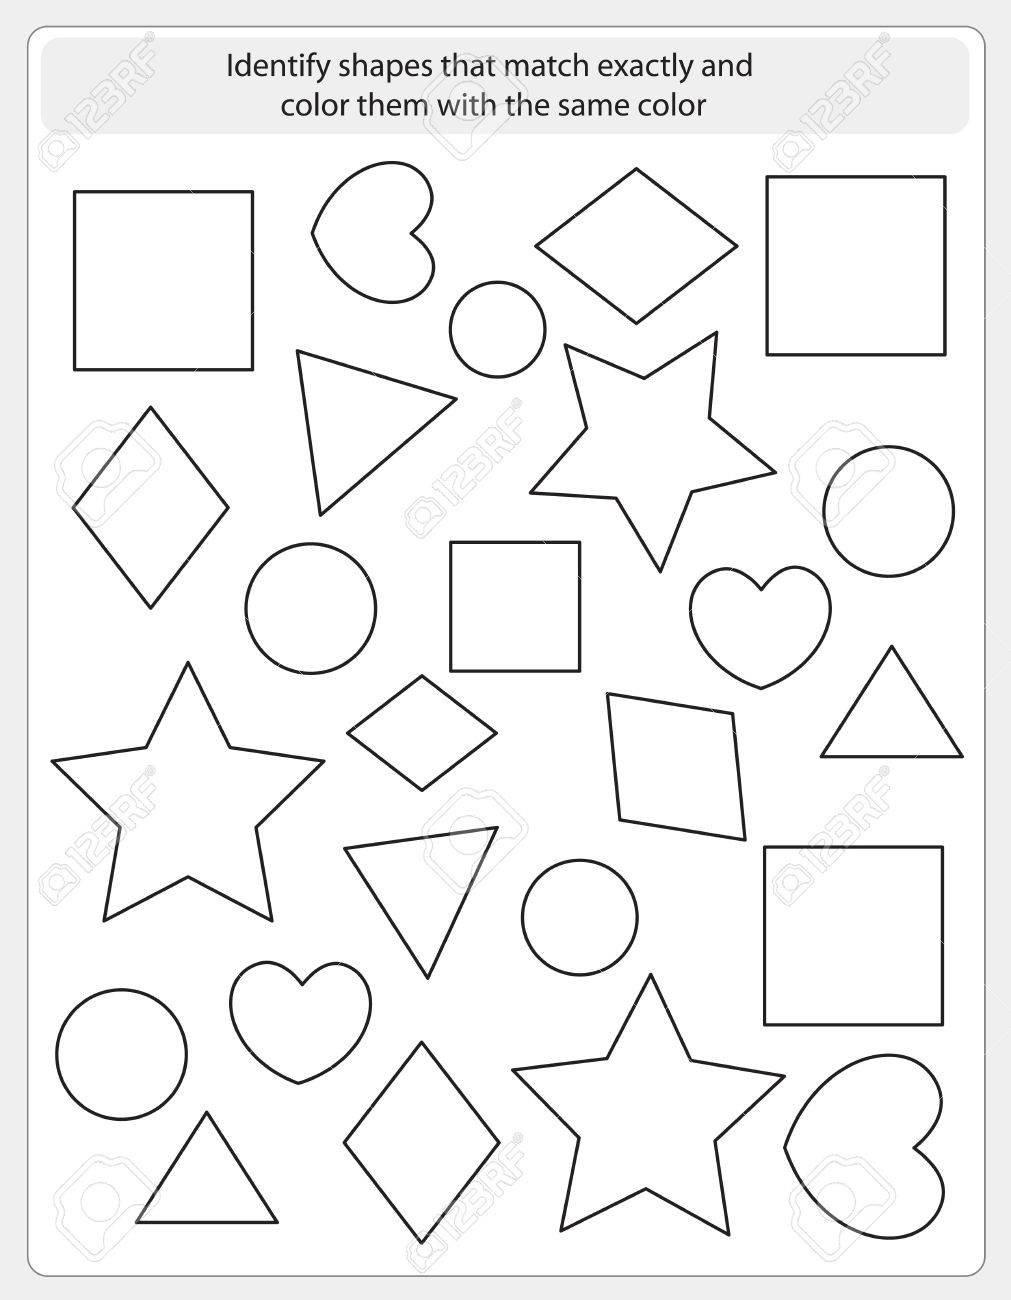 worksheet Vectors Worksheet kids worksheet with shapes to match and color same shape royalty stock vector 38748115